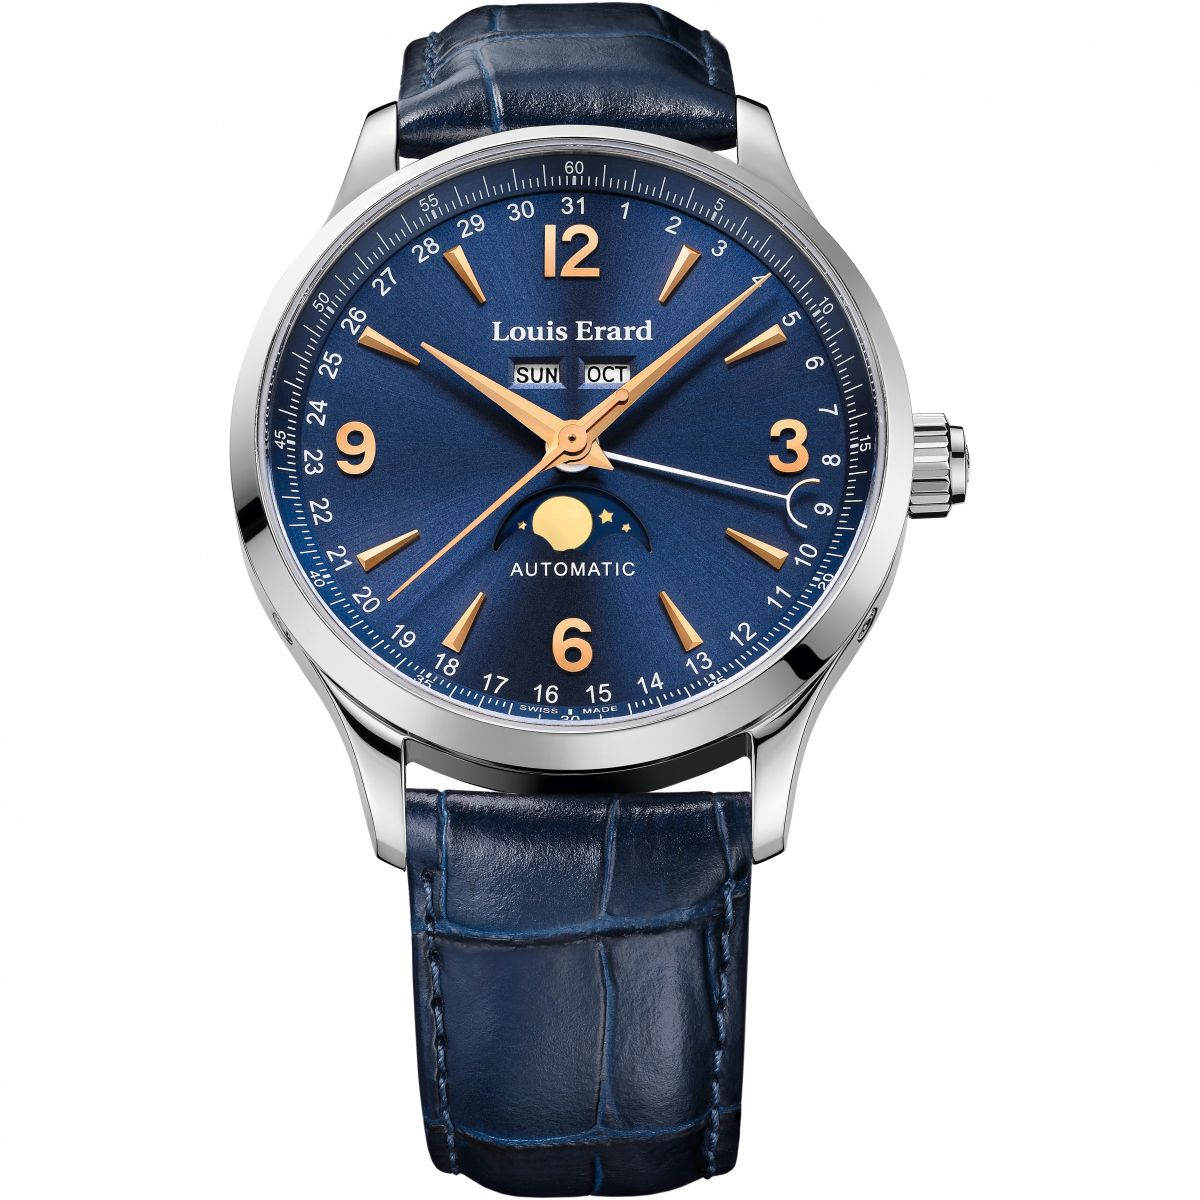 image watches watch date grande men georg s jensen mens automatic koppel calendar annual